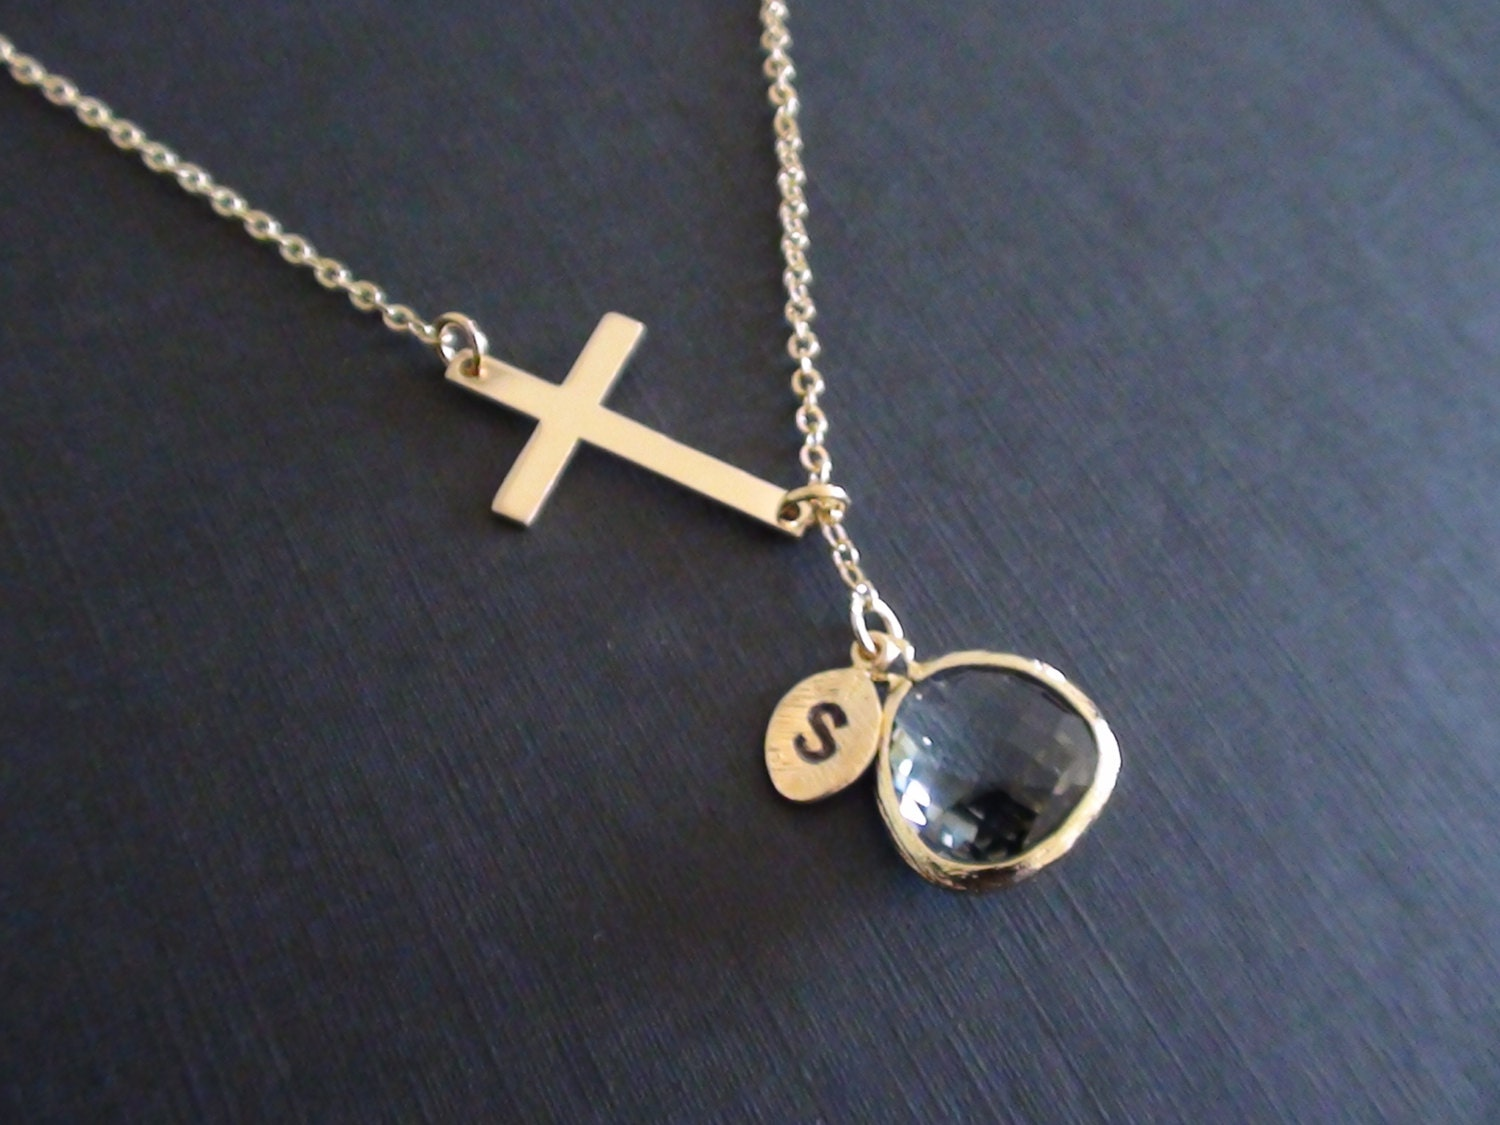 Off personalized birthstones necklace cross connector